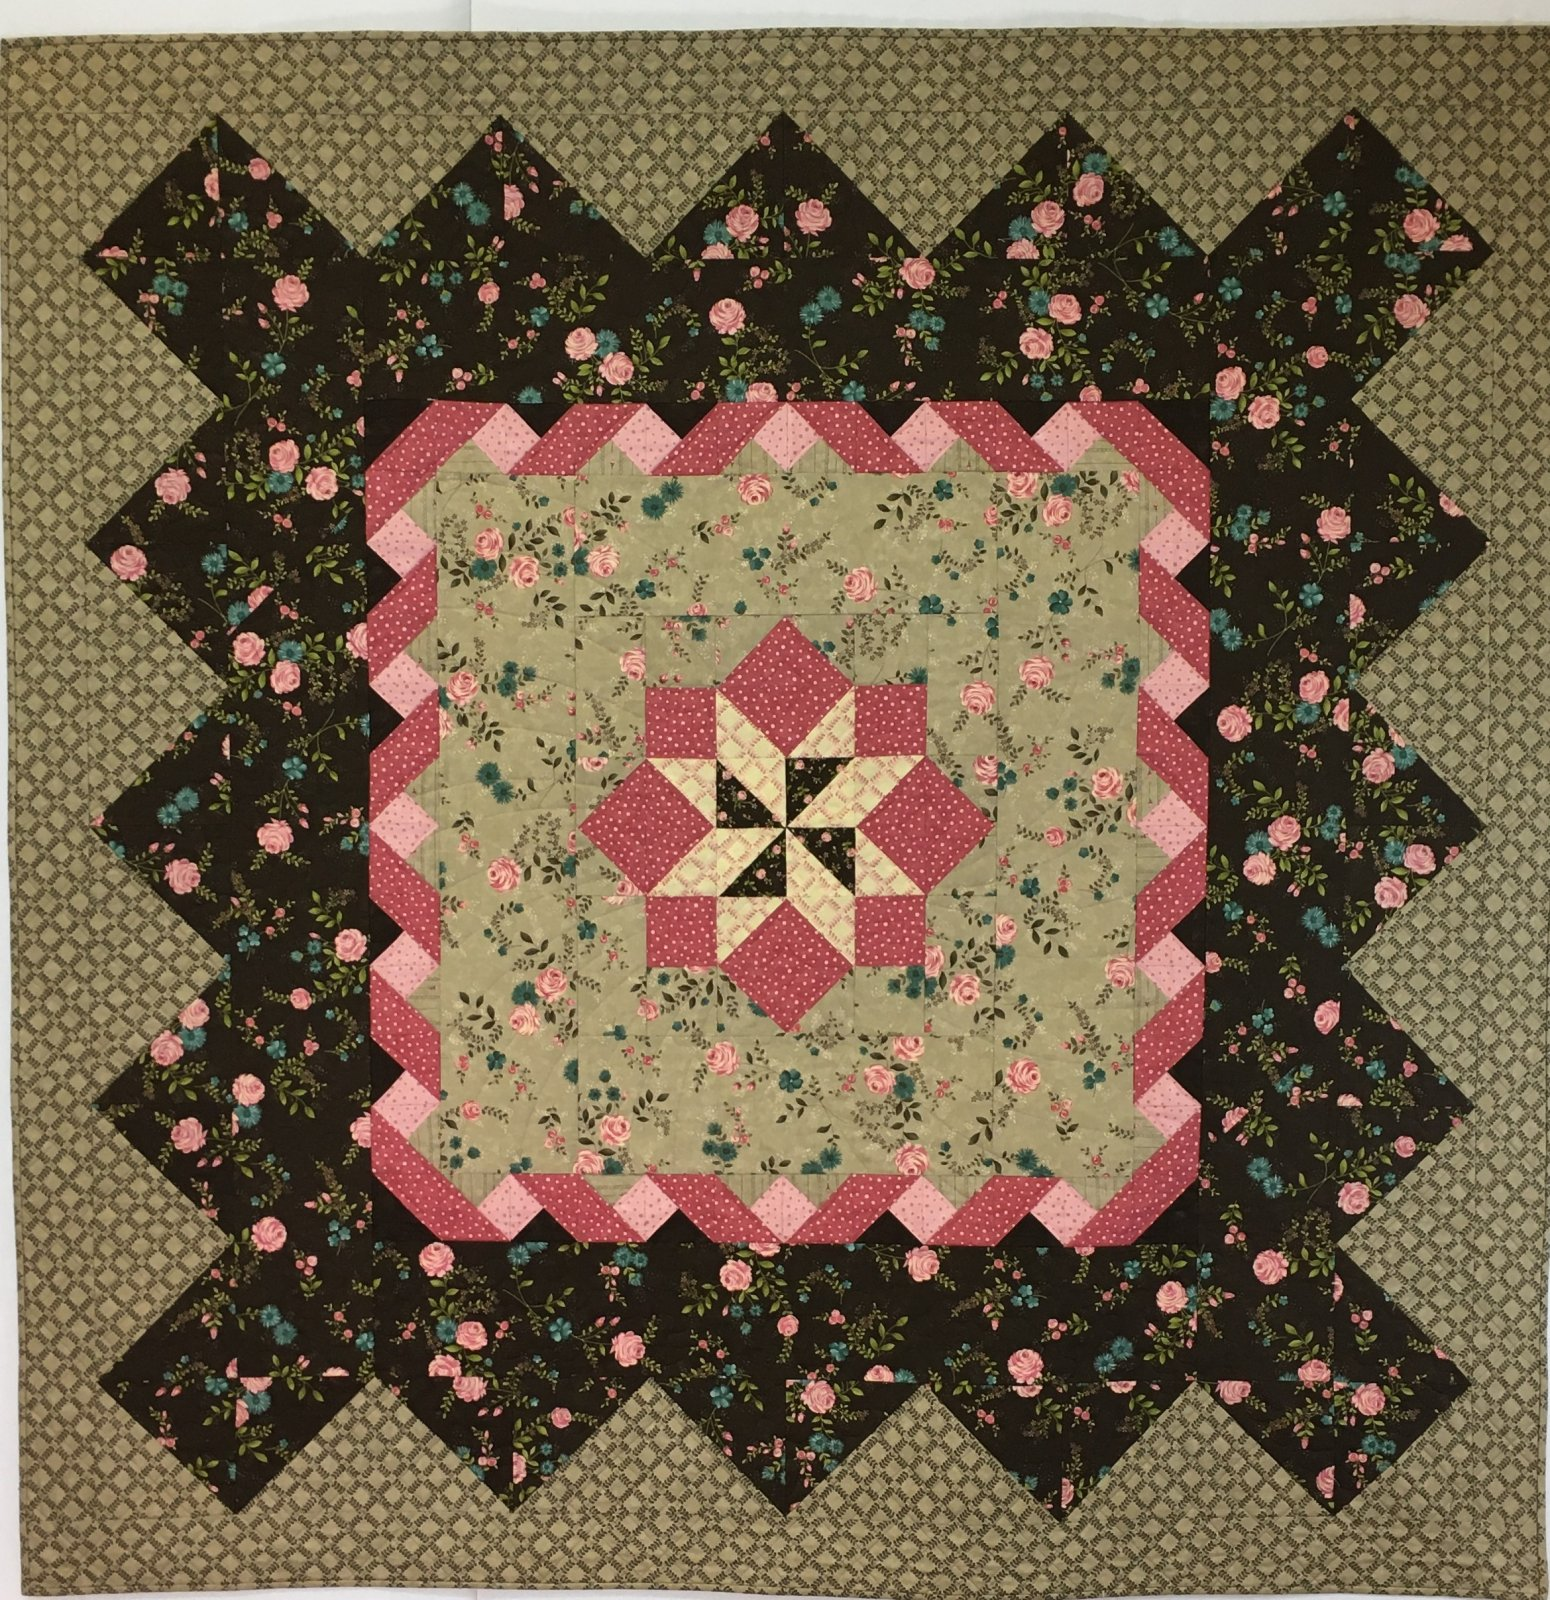 Ribbon and Roses Handmade Quilt by Sandy Gervais